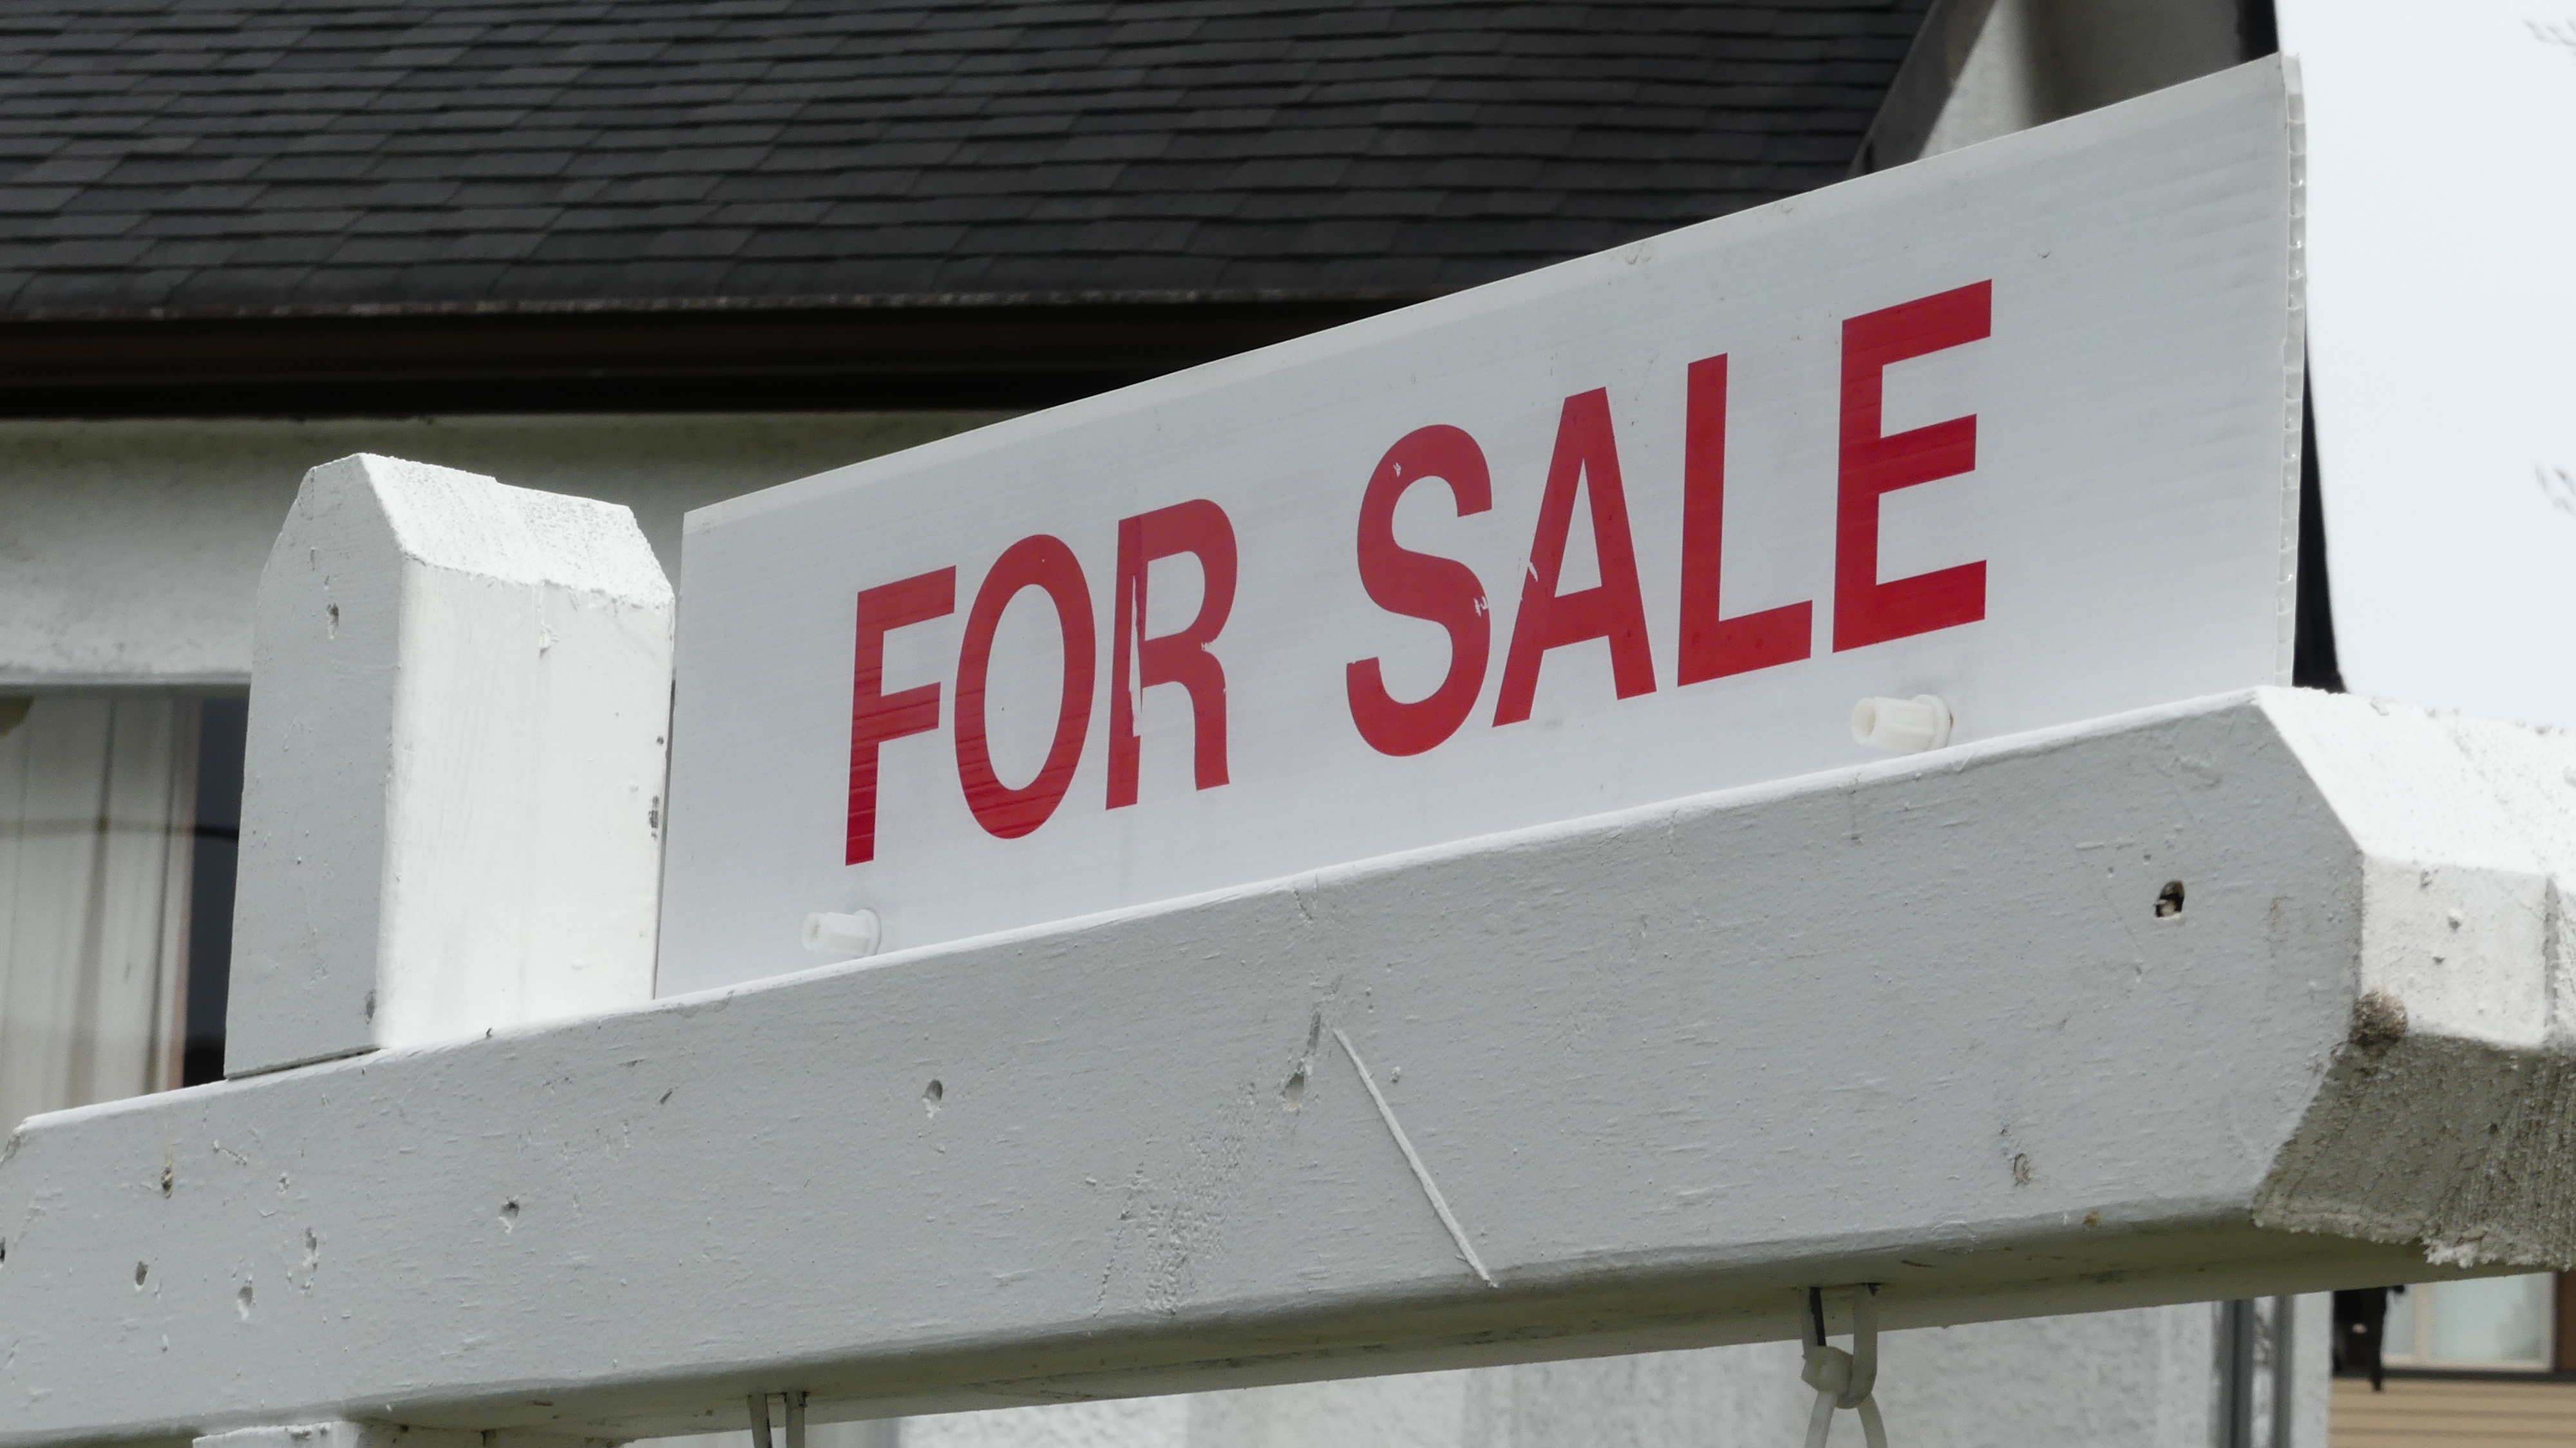 Unclear If New BC Real Estate Registry Will Make Housing More Affordable